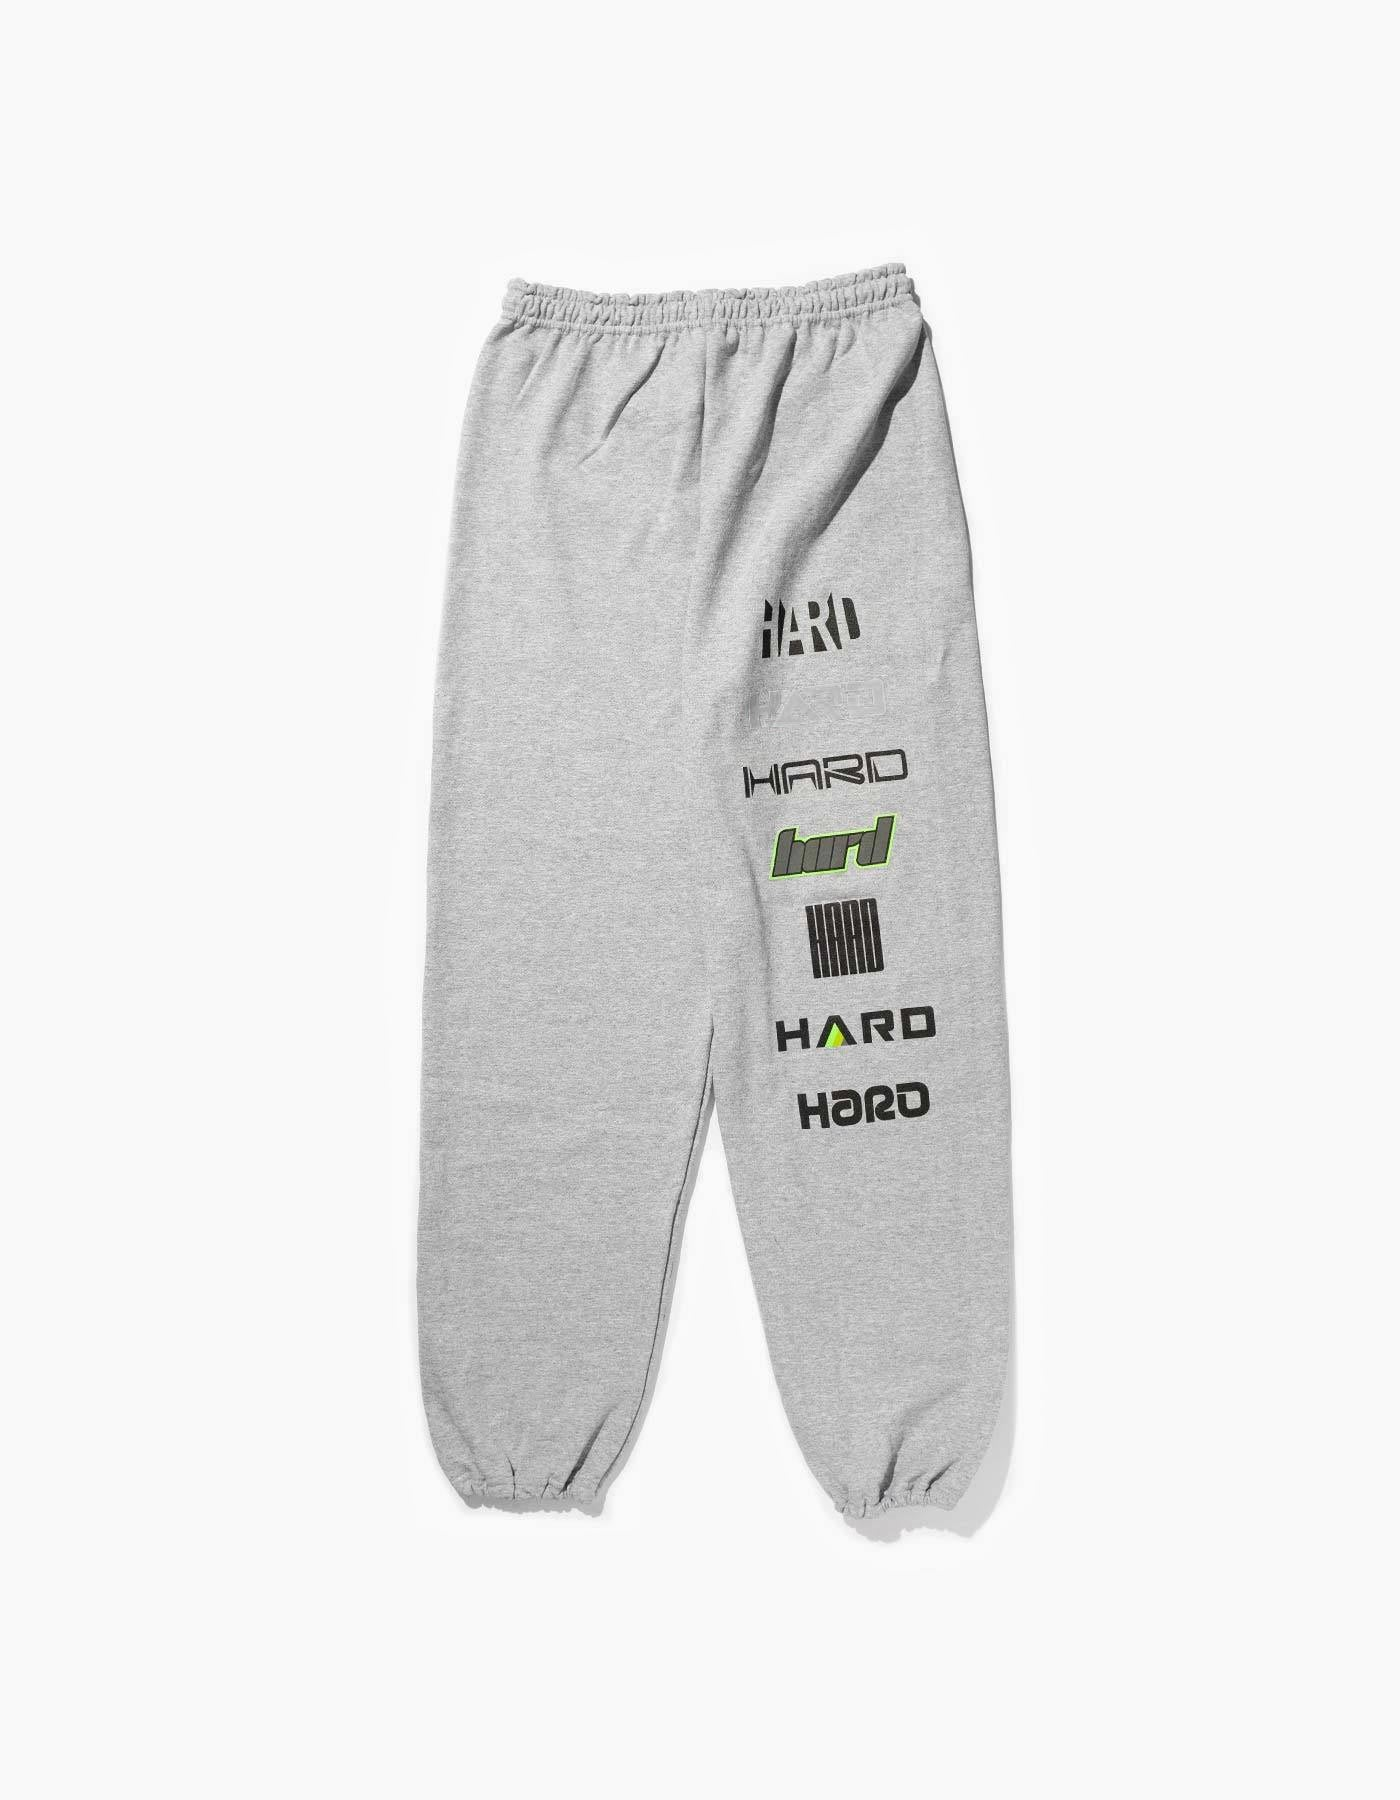 96ac162d HARD Summer 2019 Logos Sweatpants – Insomniac Shop